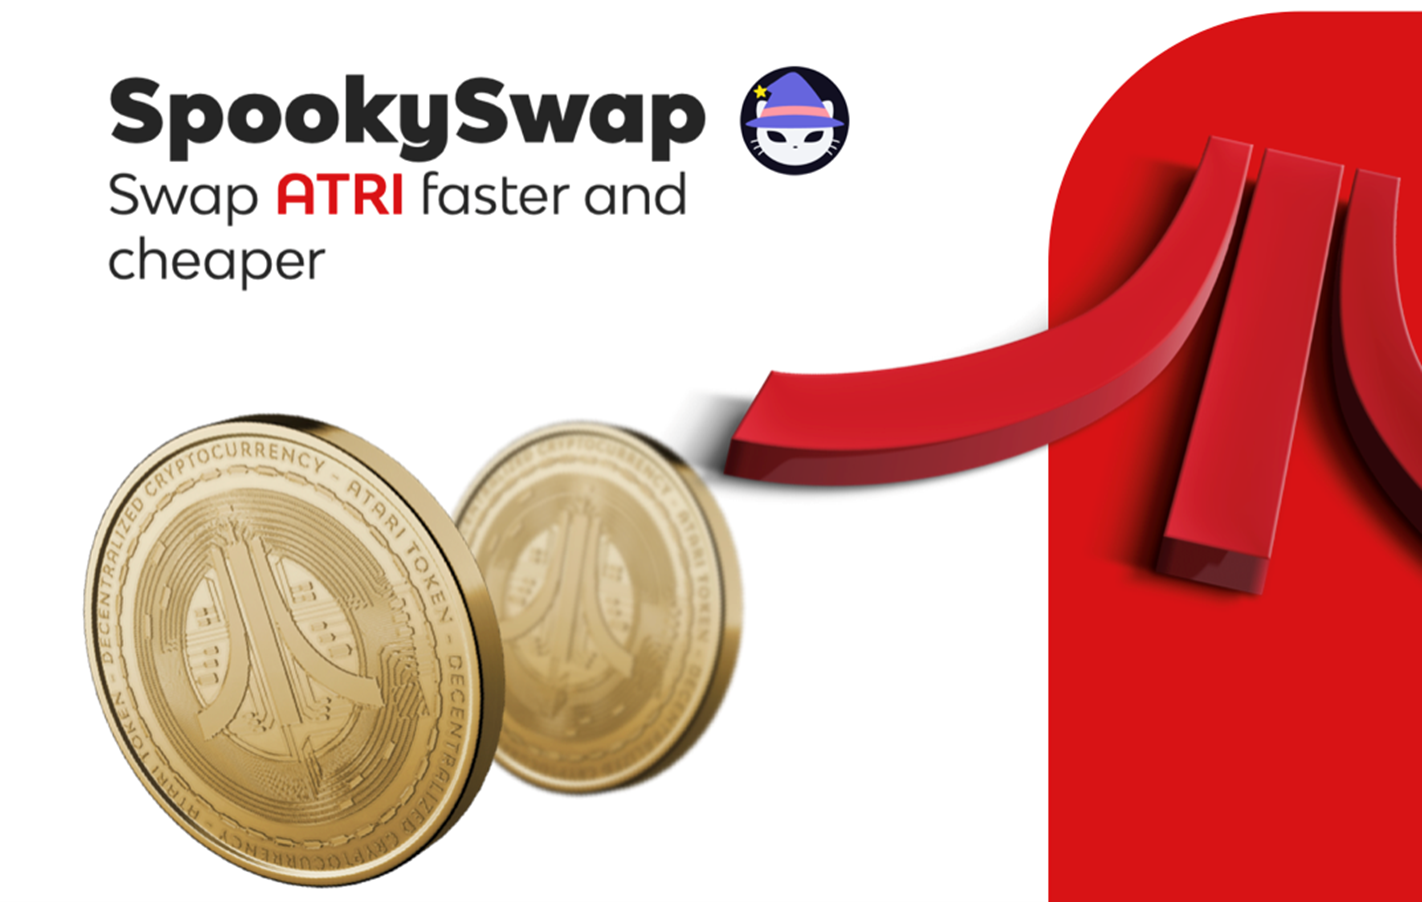 Blockchain Gaming Enthusiasts Can Now Swap ATRI Tokens Faster And Cheaper Using SpookySwap